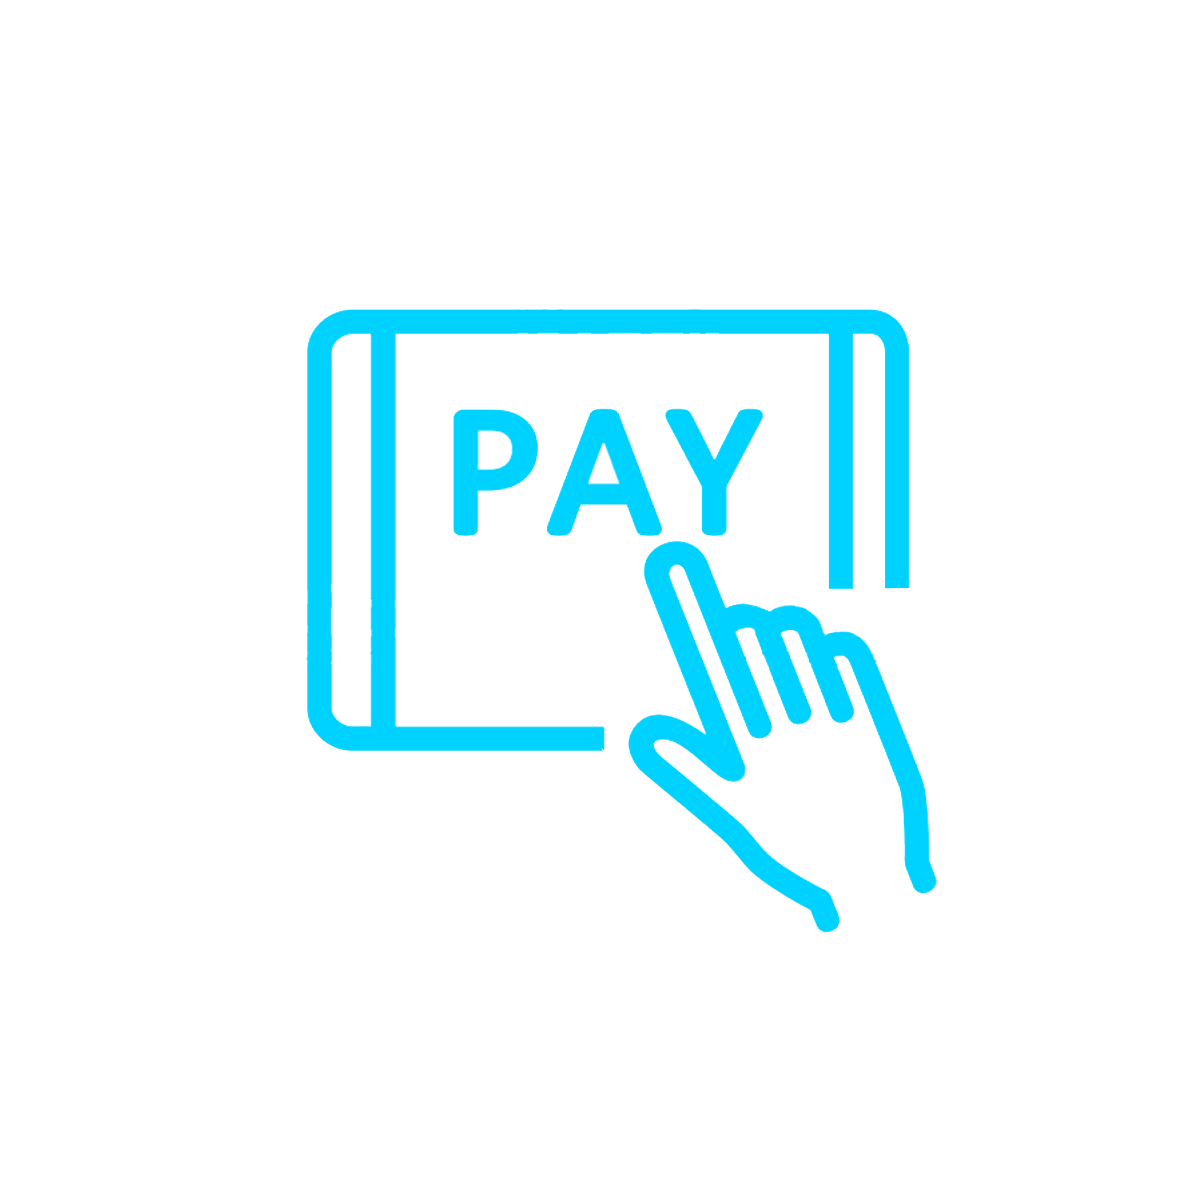 NO CONTACT PAYMENT